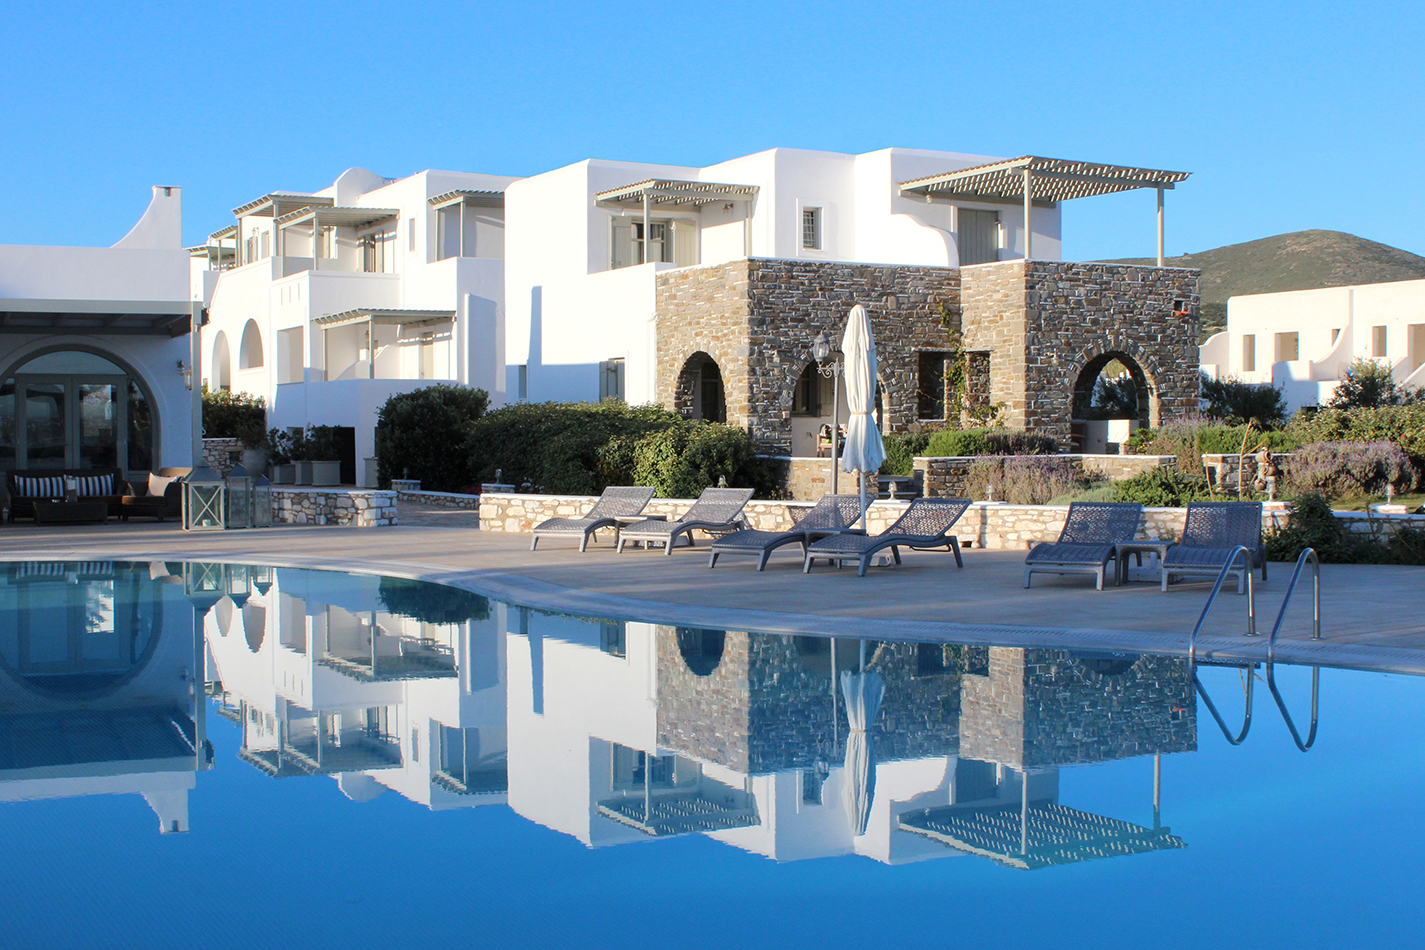 Saint Andrea Seaside Resort, Naoussa, Paros